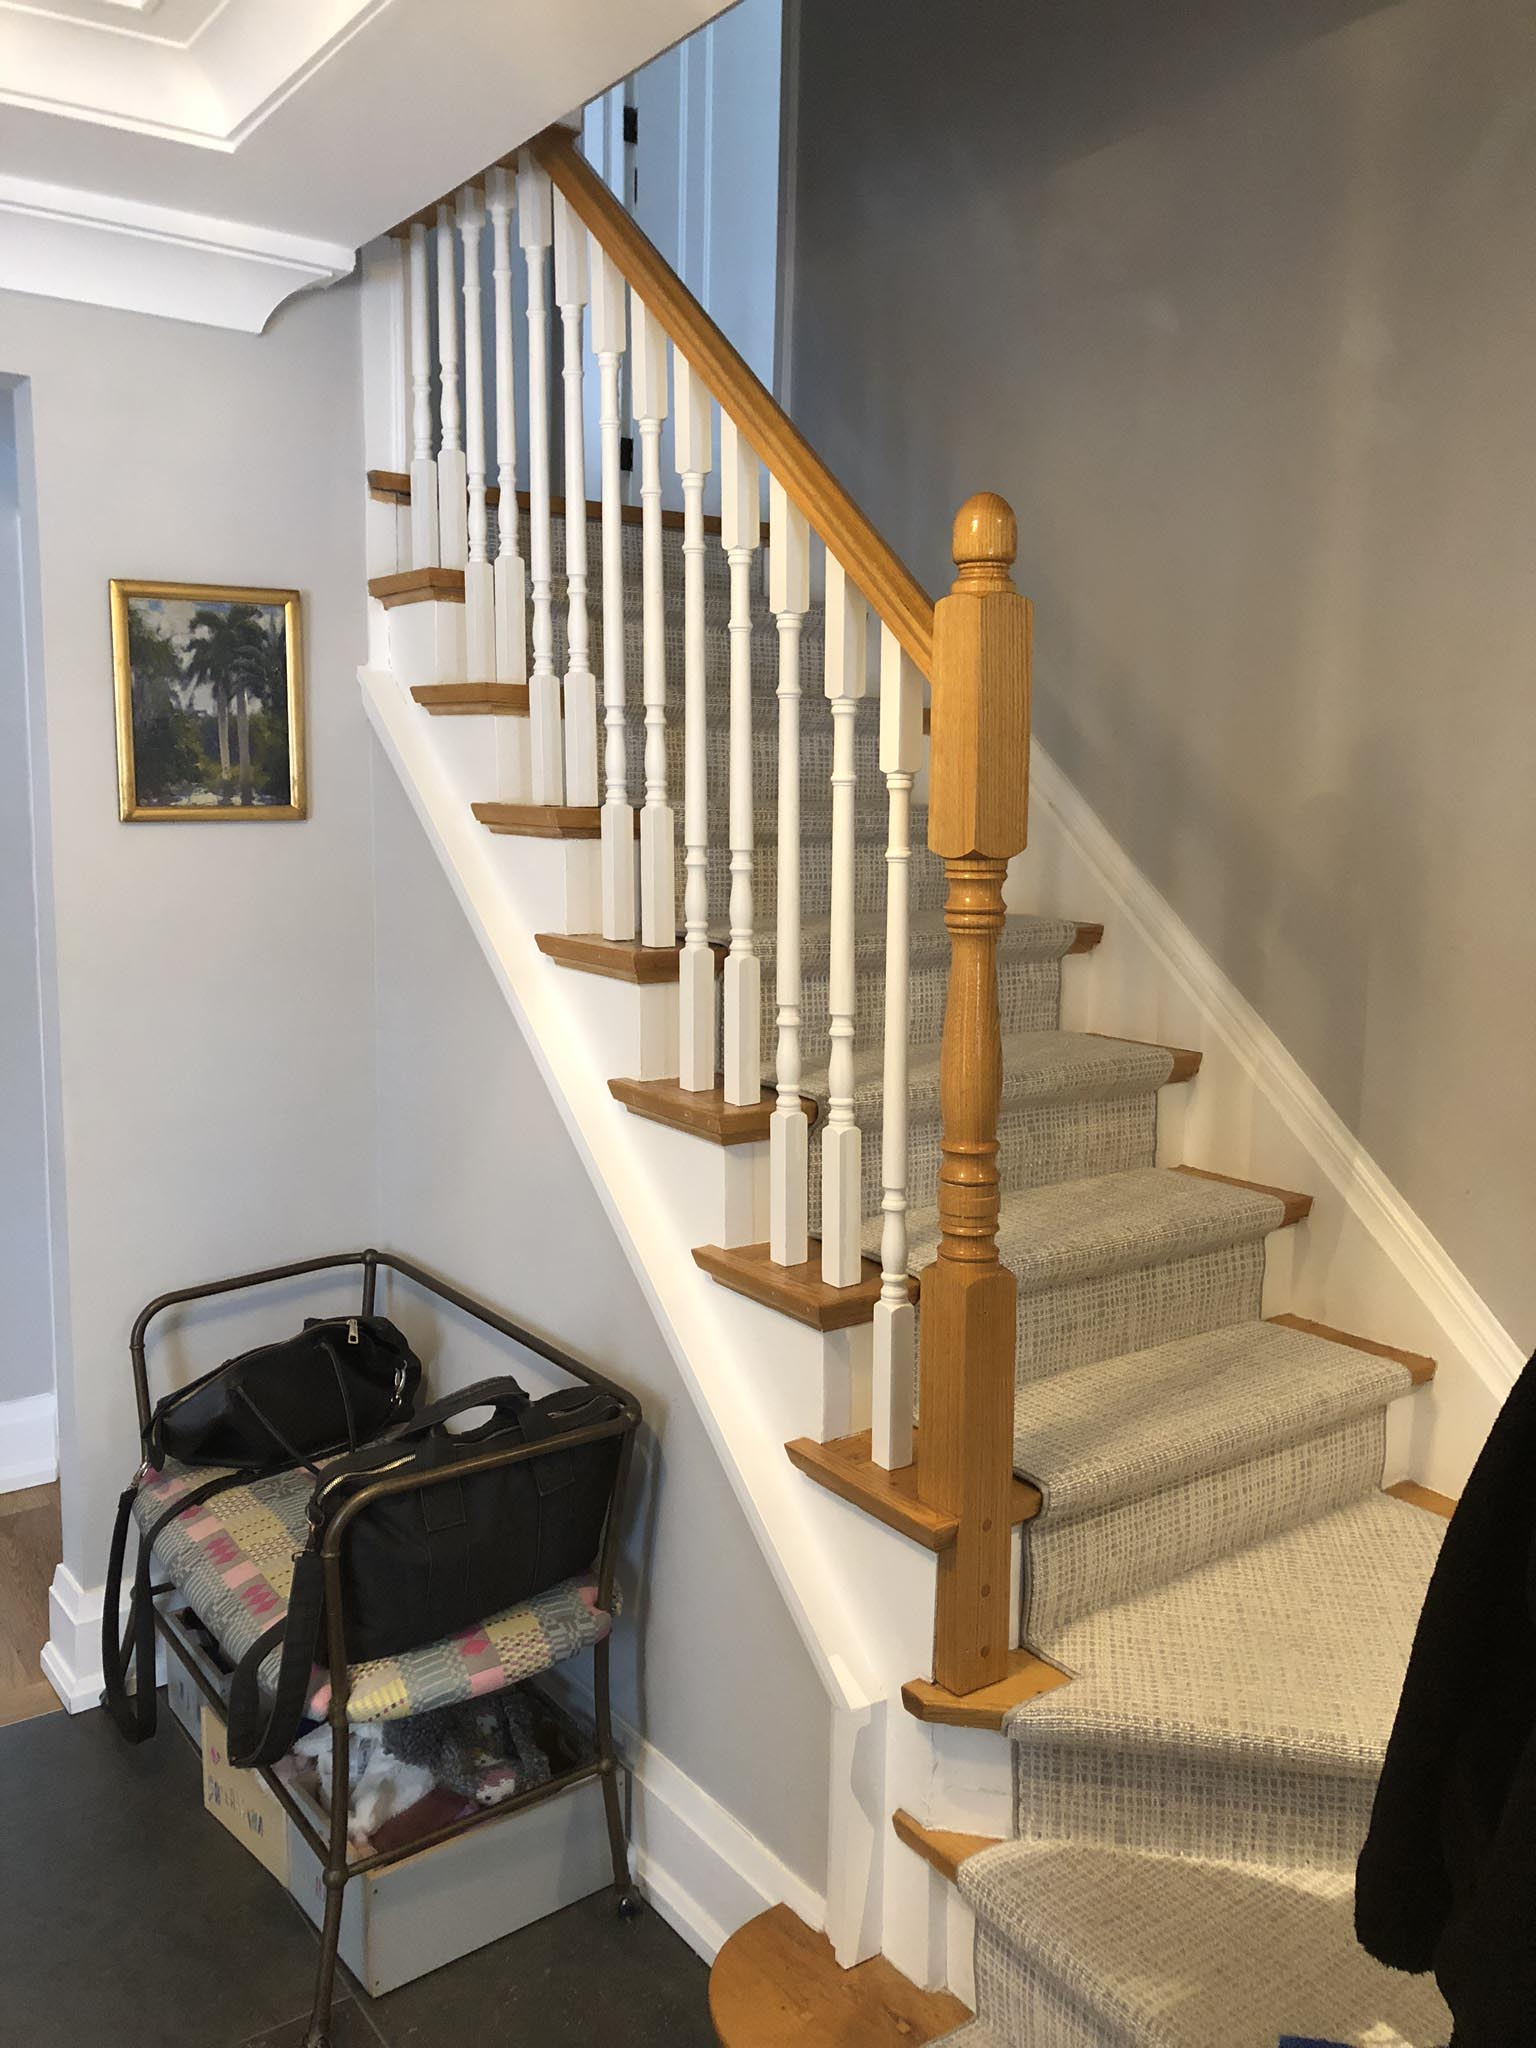 A staircase before the renovation.